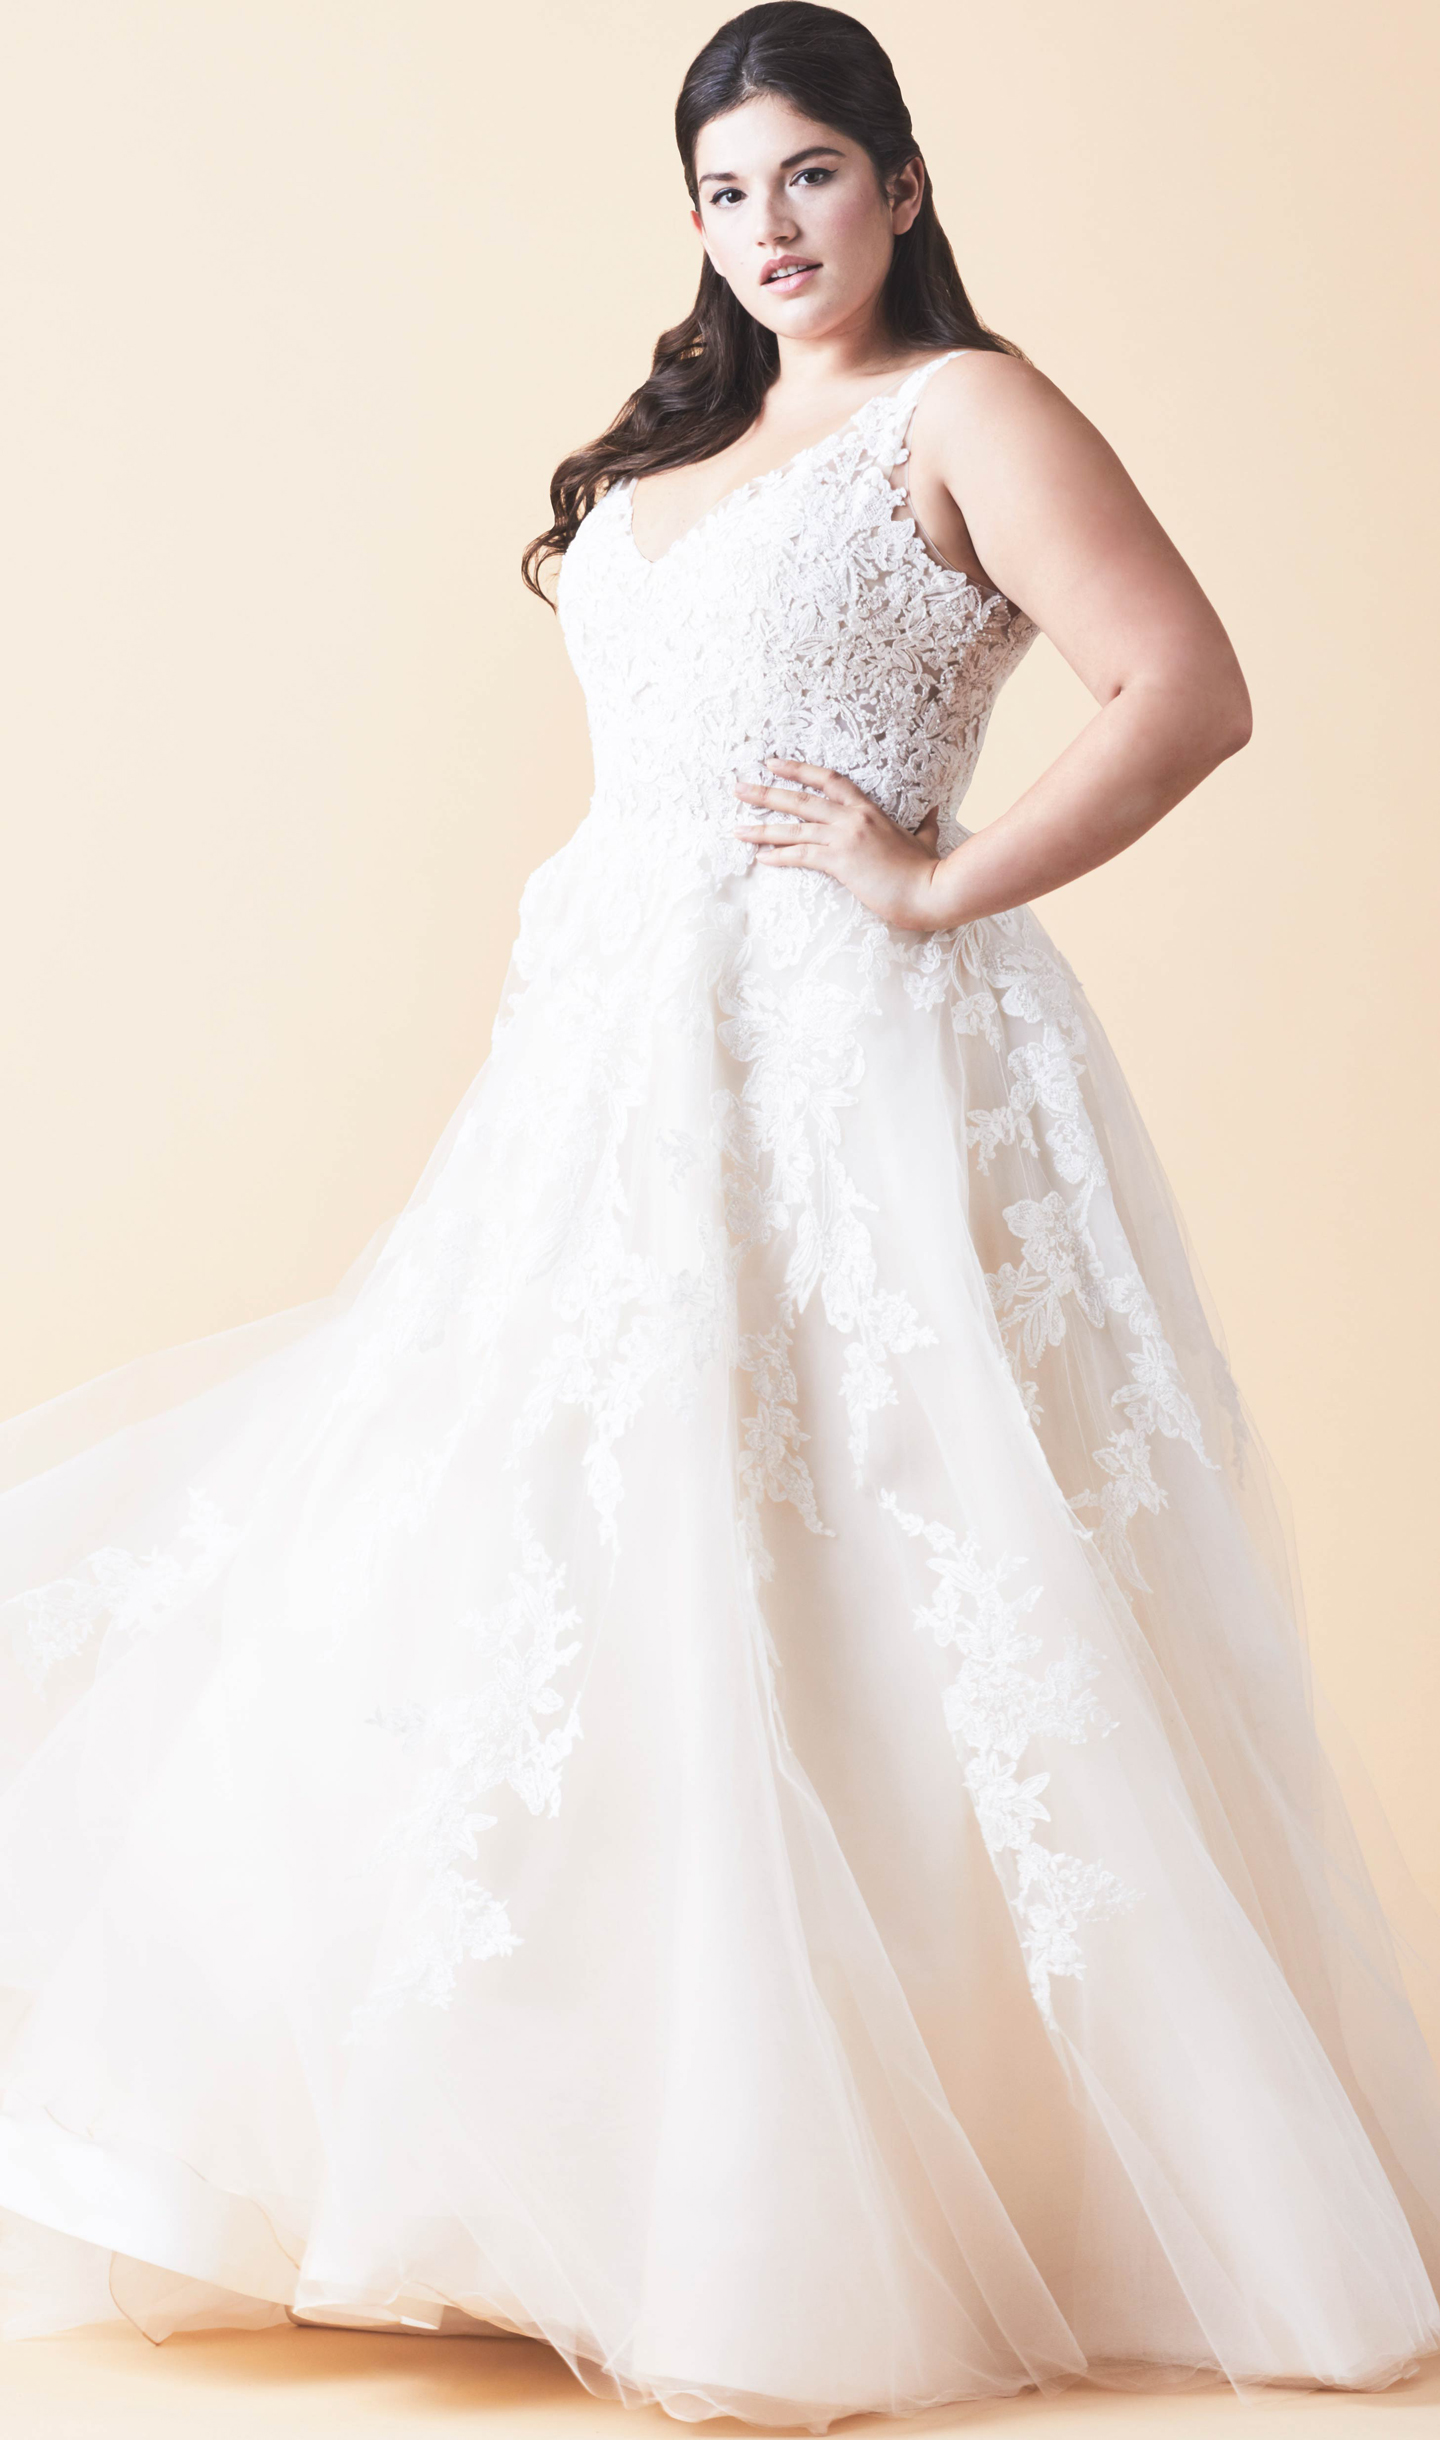 Celebrate: A Nashville Trunk Show featuring Plus Size Wedding ...